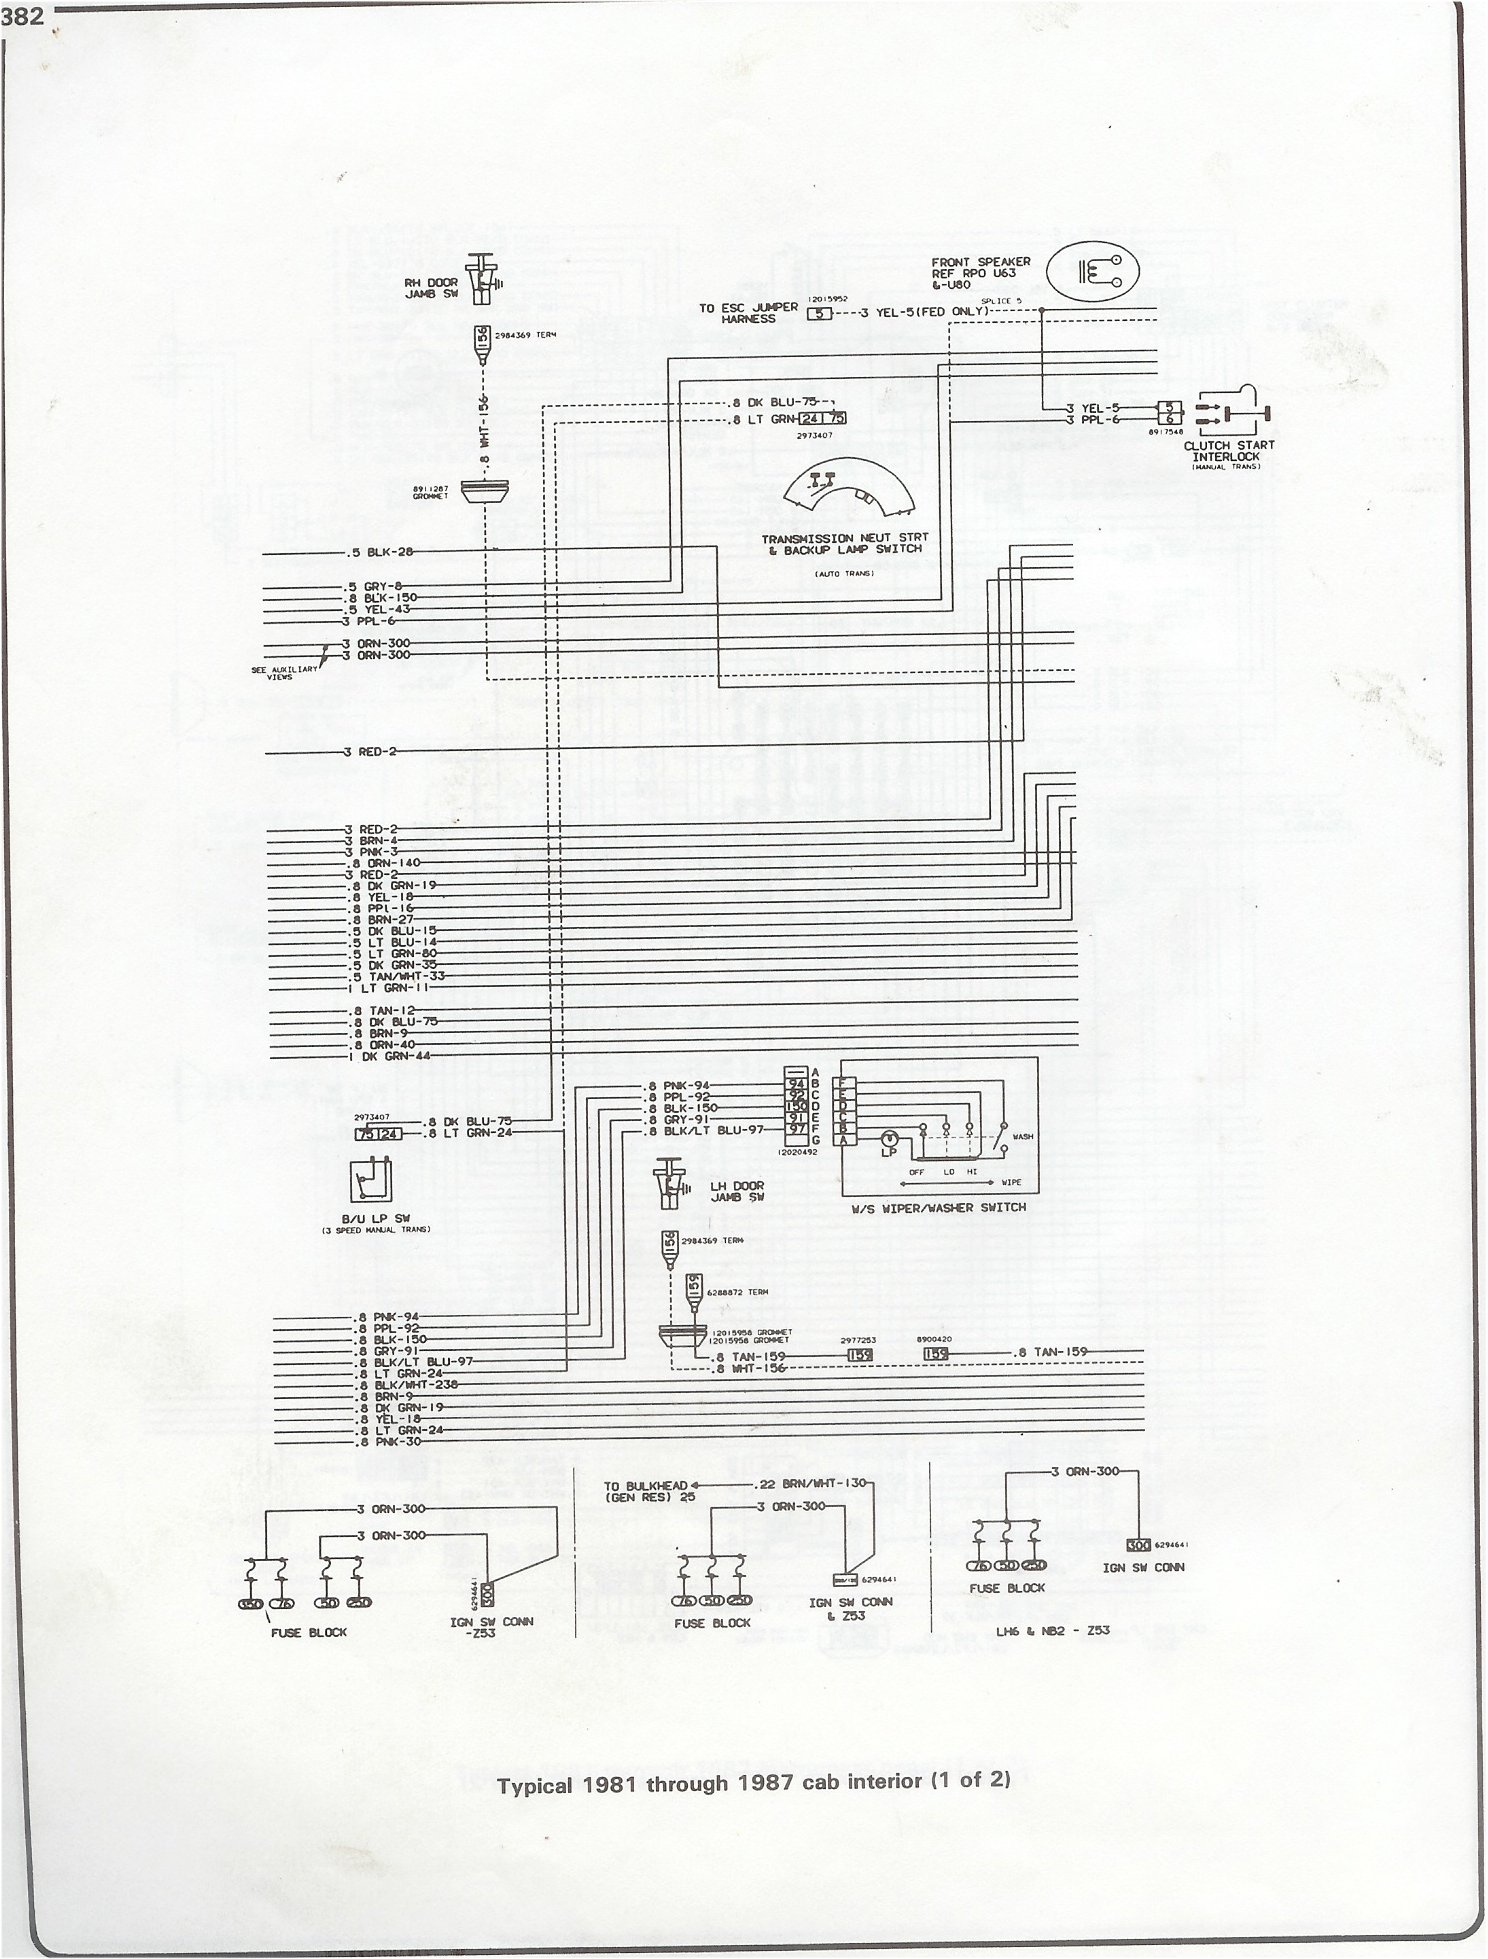 k 5 wiring diagram suzuki c90 brake light switch wiring diagram? - blazer forum - chevy ...